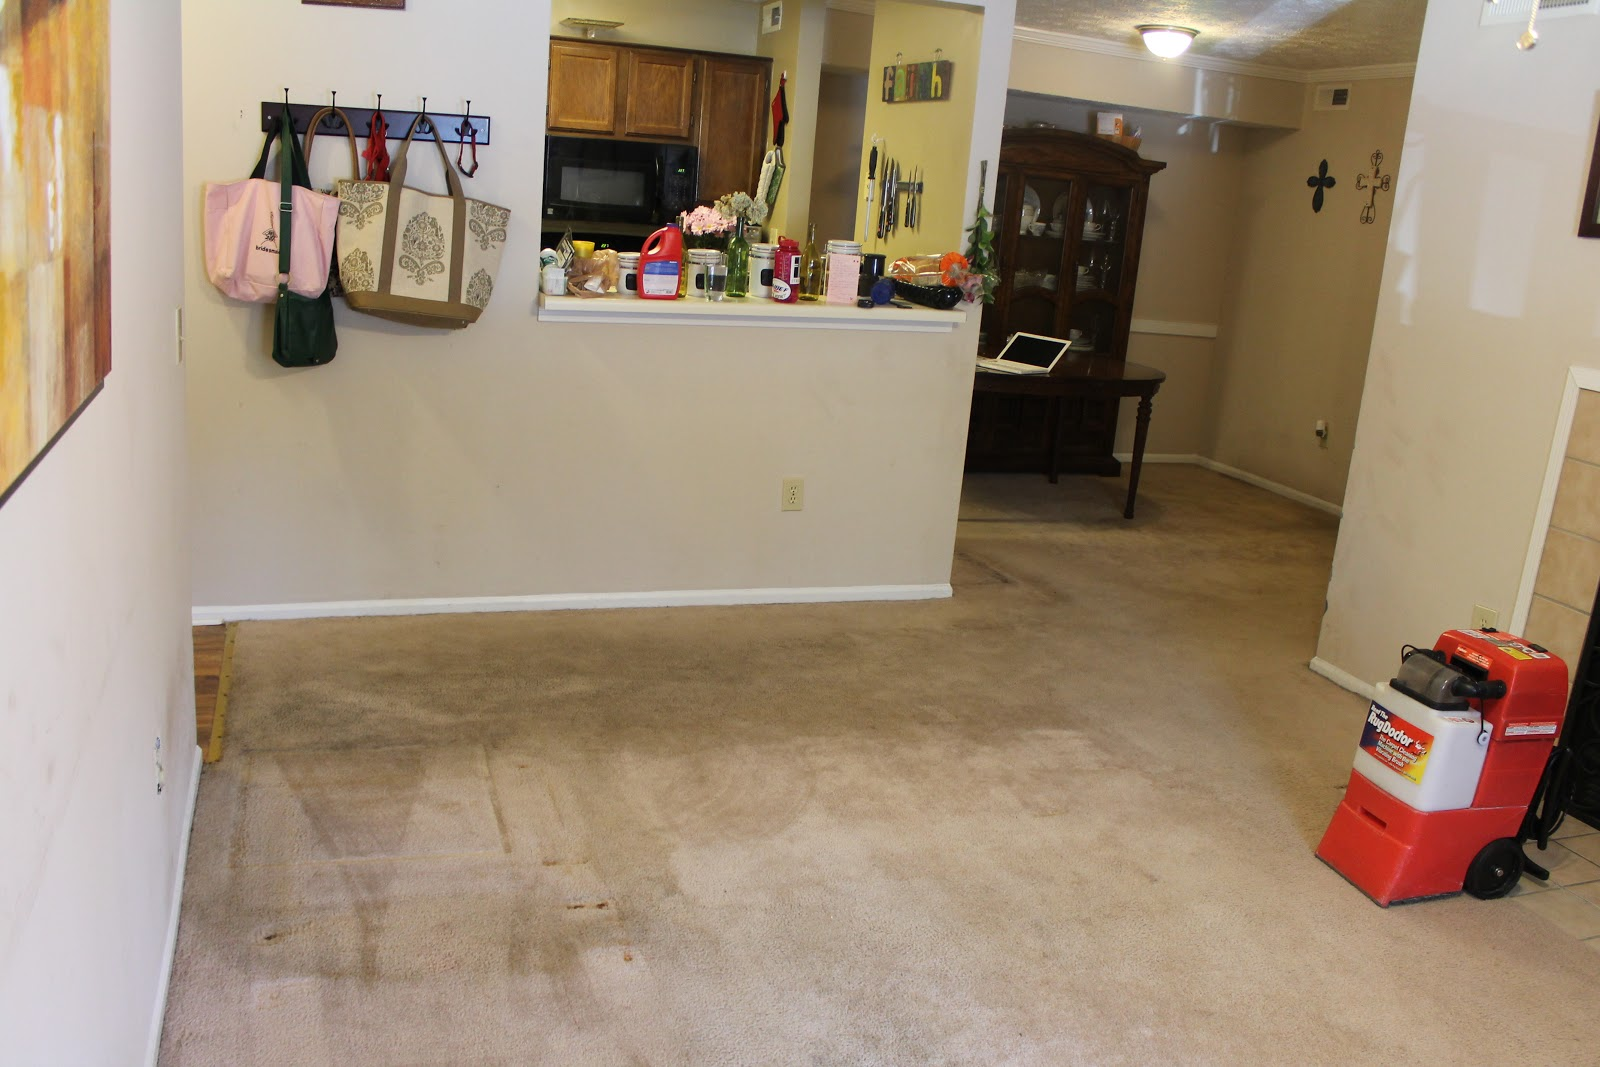 Captivating Carpet Cleaning Review (Rug Doctor)